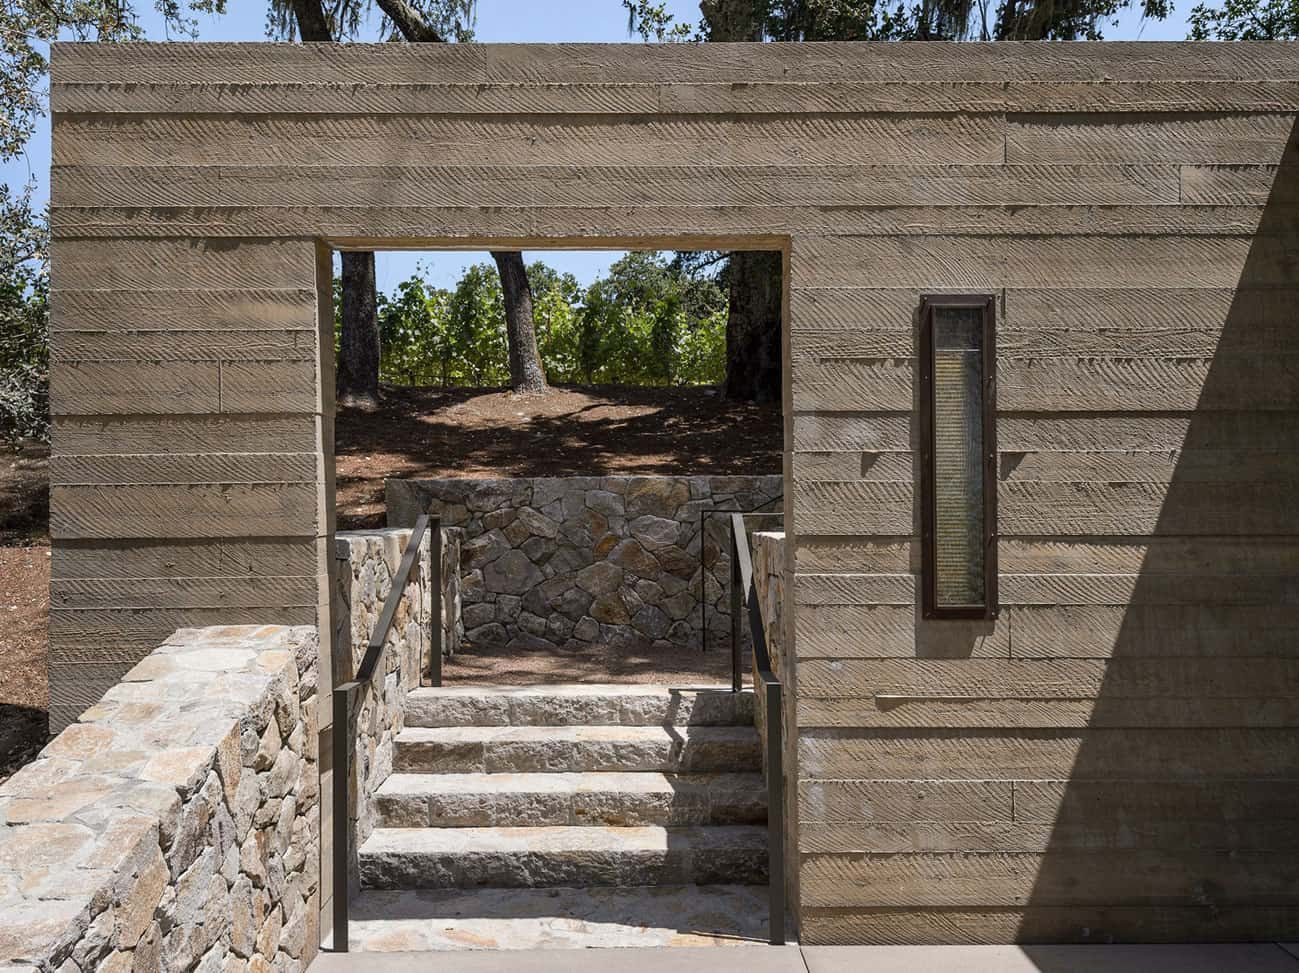 Pavilions Designed by the American Architectural Firm Walker Warner Architects